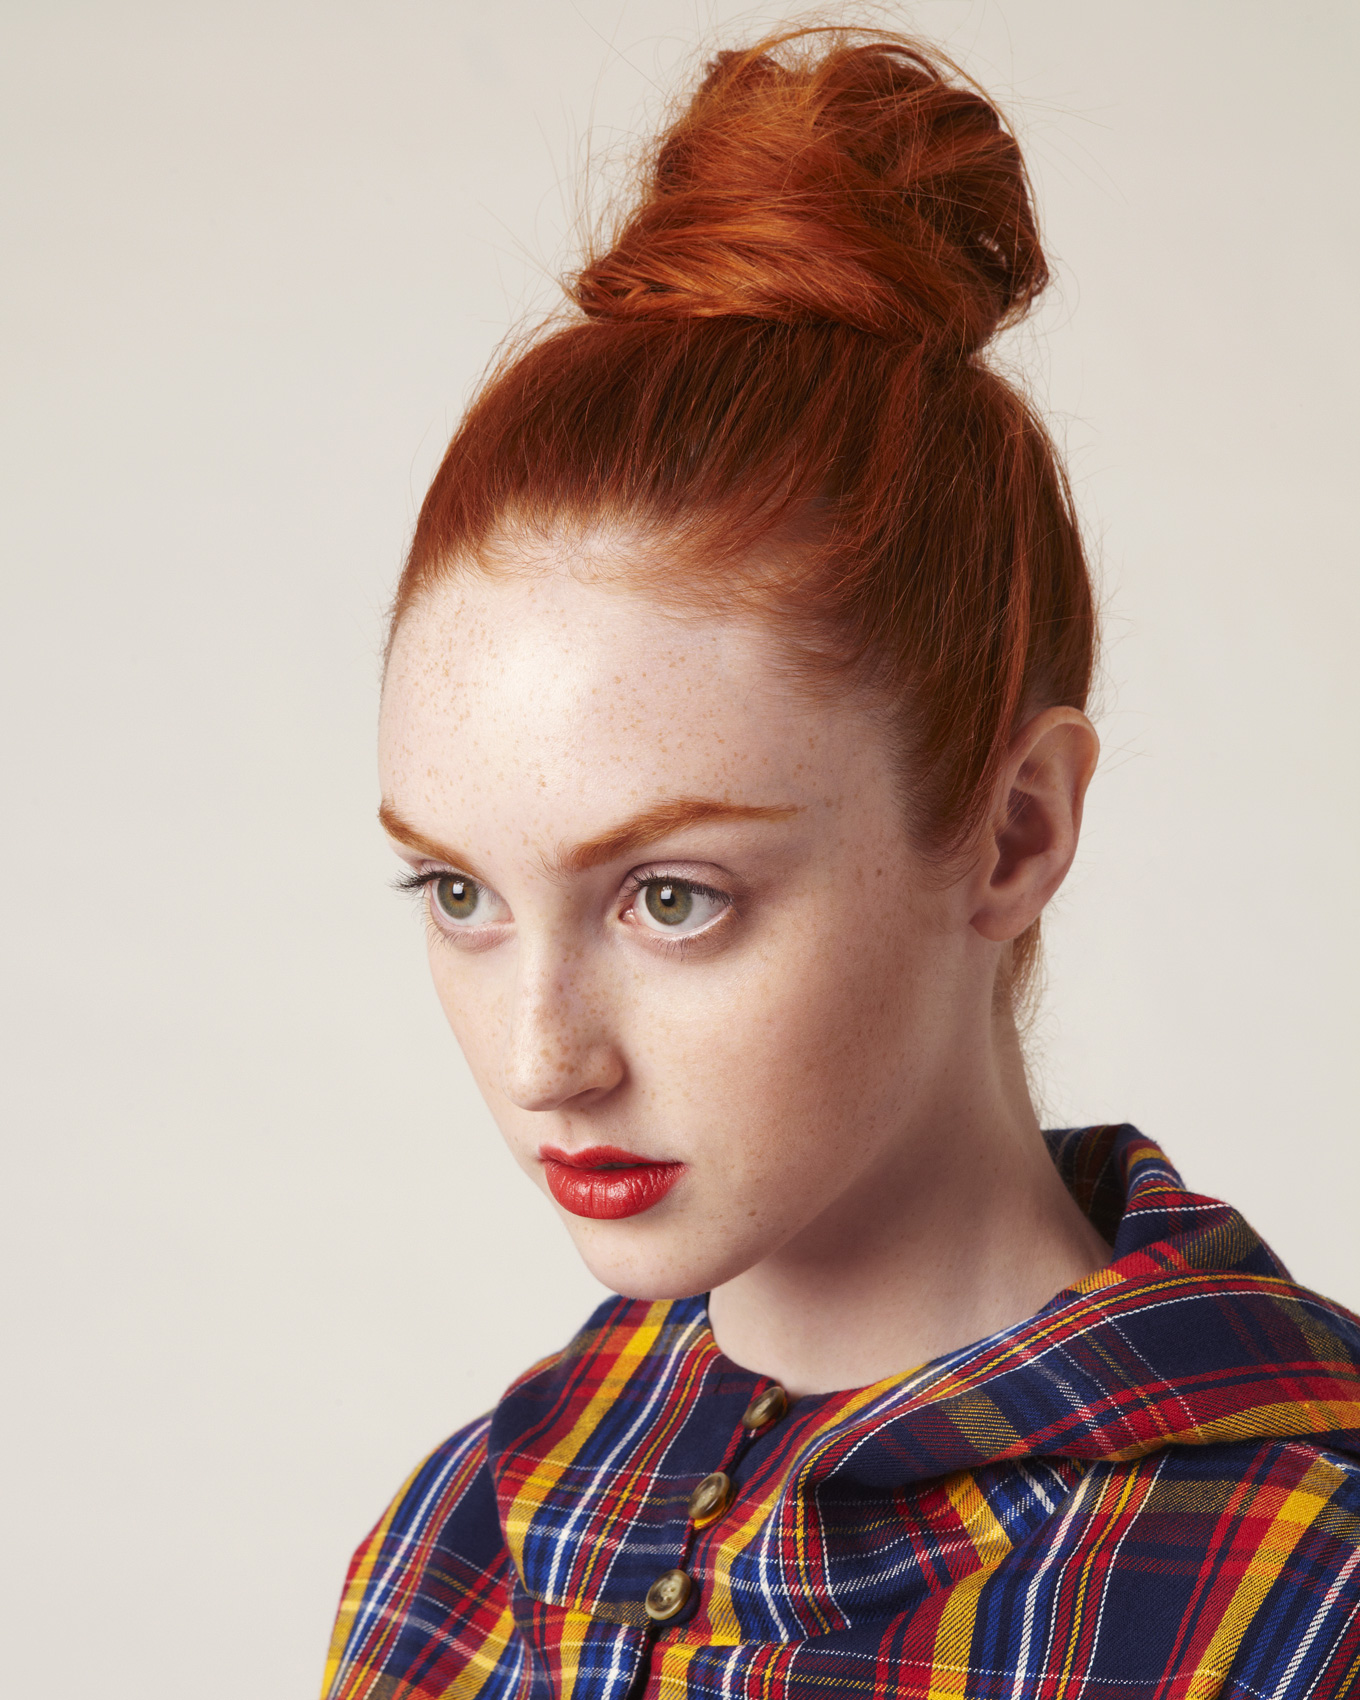 frances-coombe_plaid_fashion_top-knot_ty-mecham_harvey-faircloth_01-01